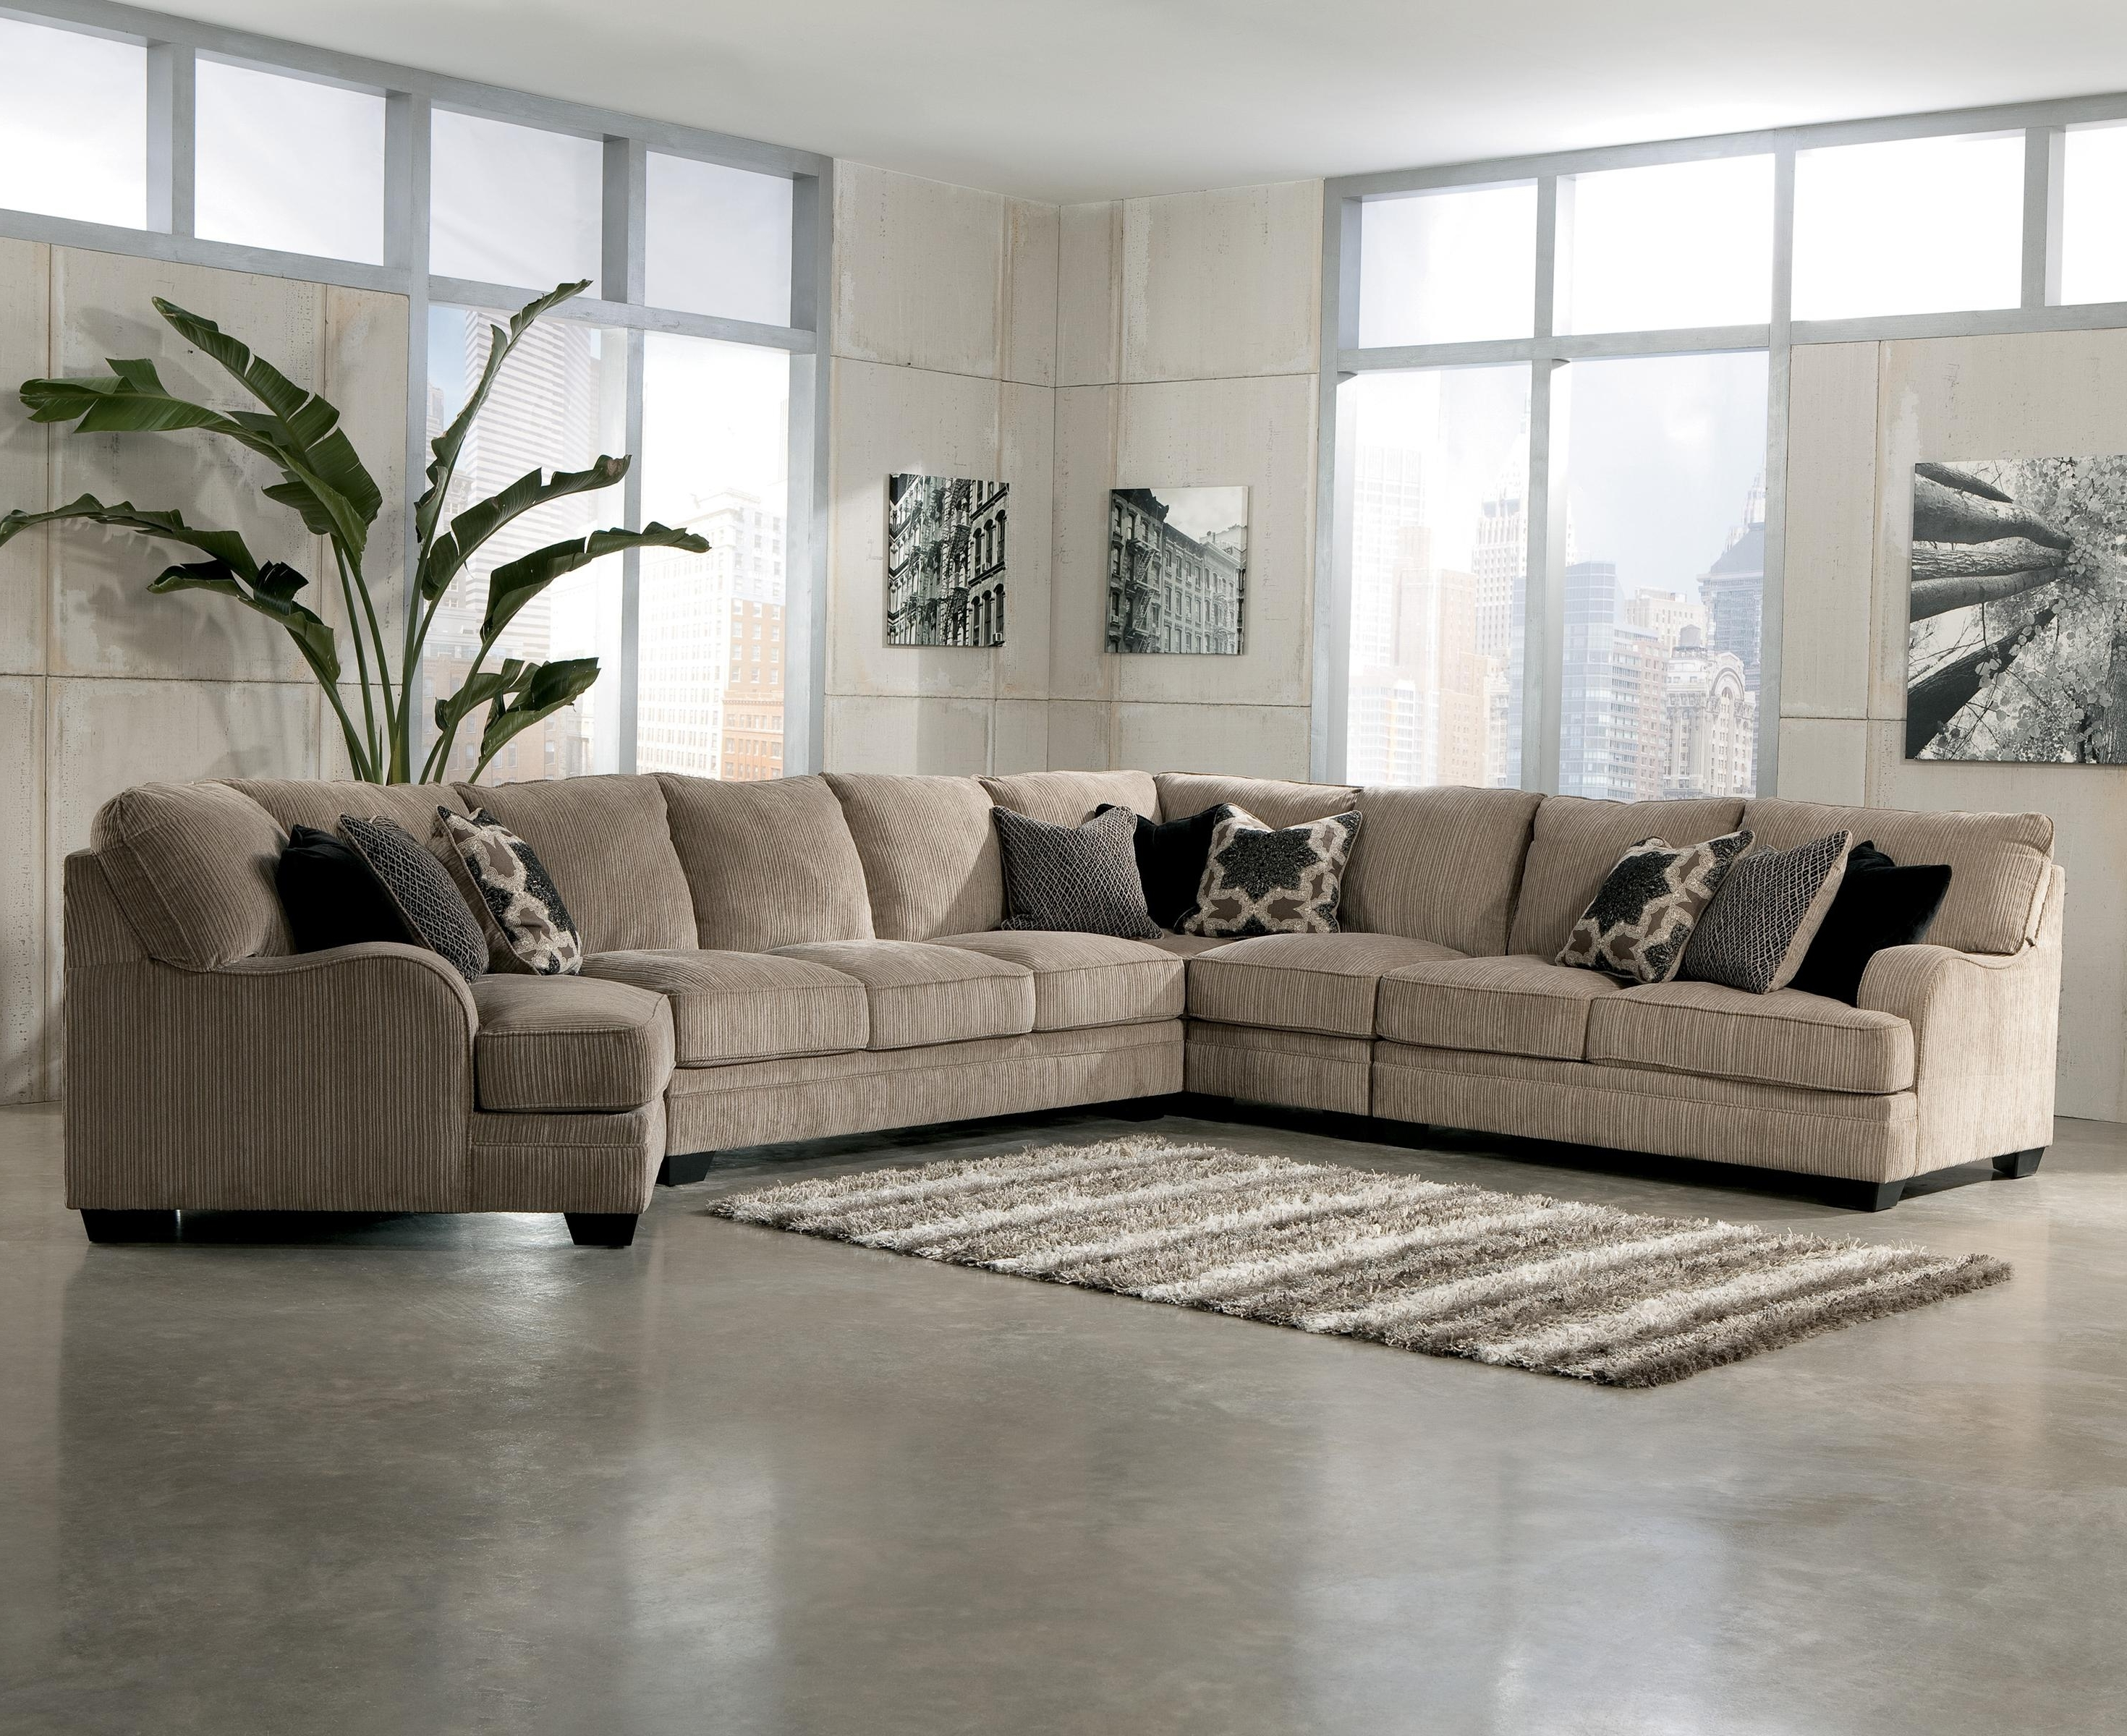 Signature Designashley Katisha – Platinum 5 Piece Sectional Within Well Known Johnson City Tn Sectional Sofas (View 13 of 15)